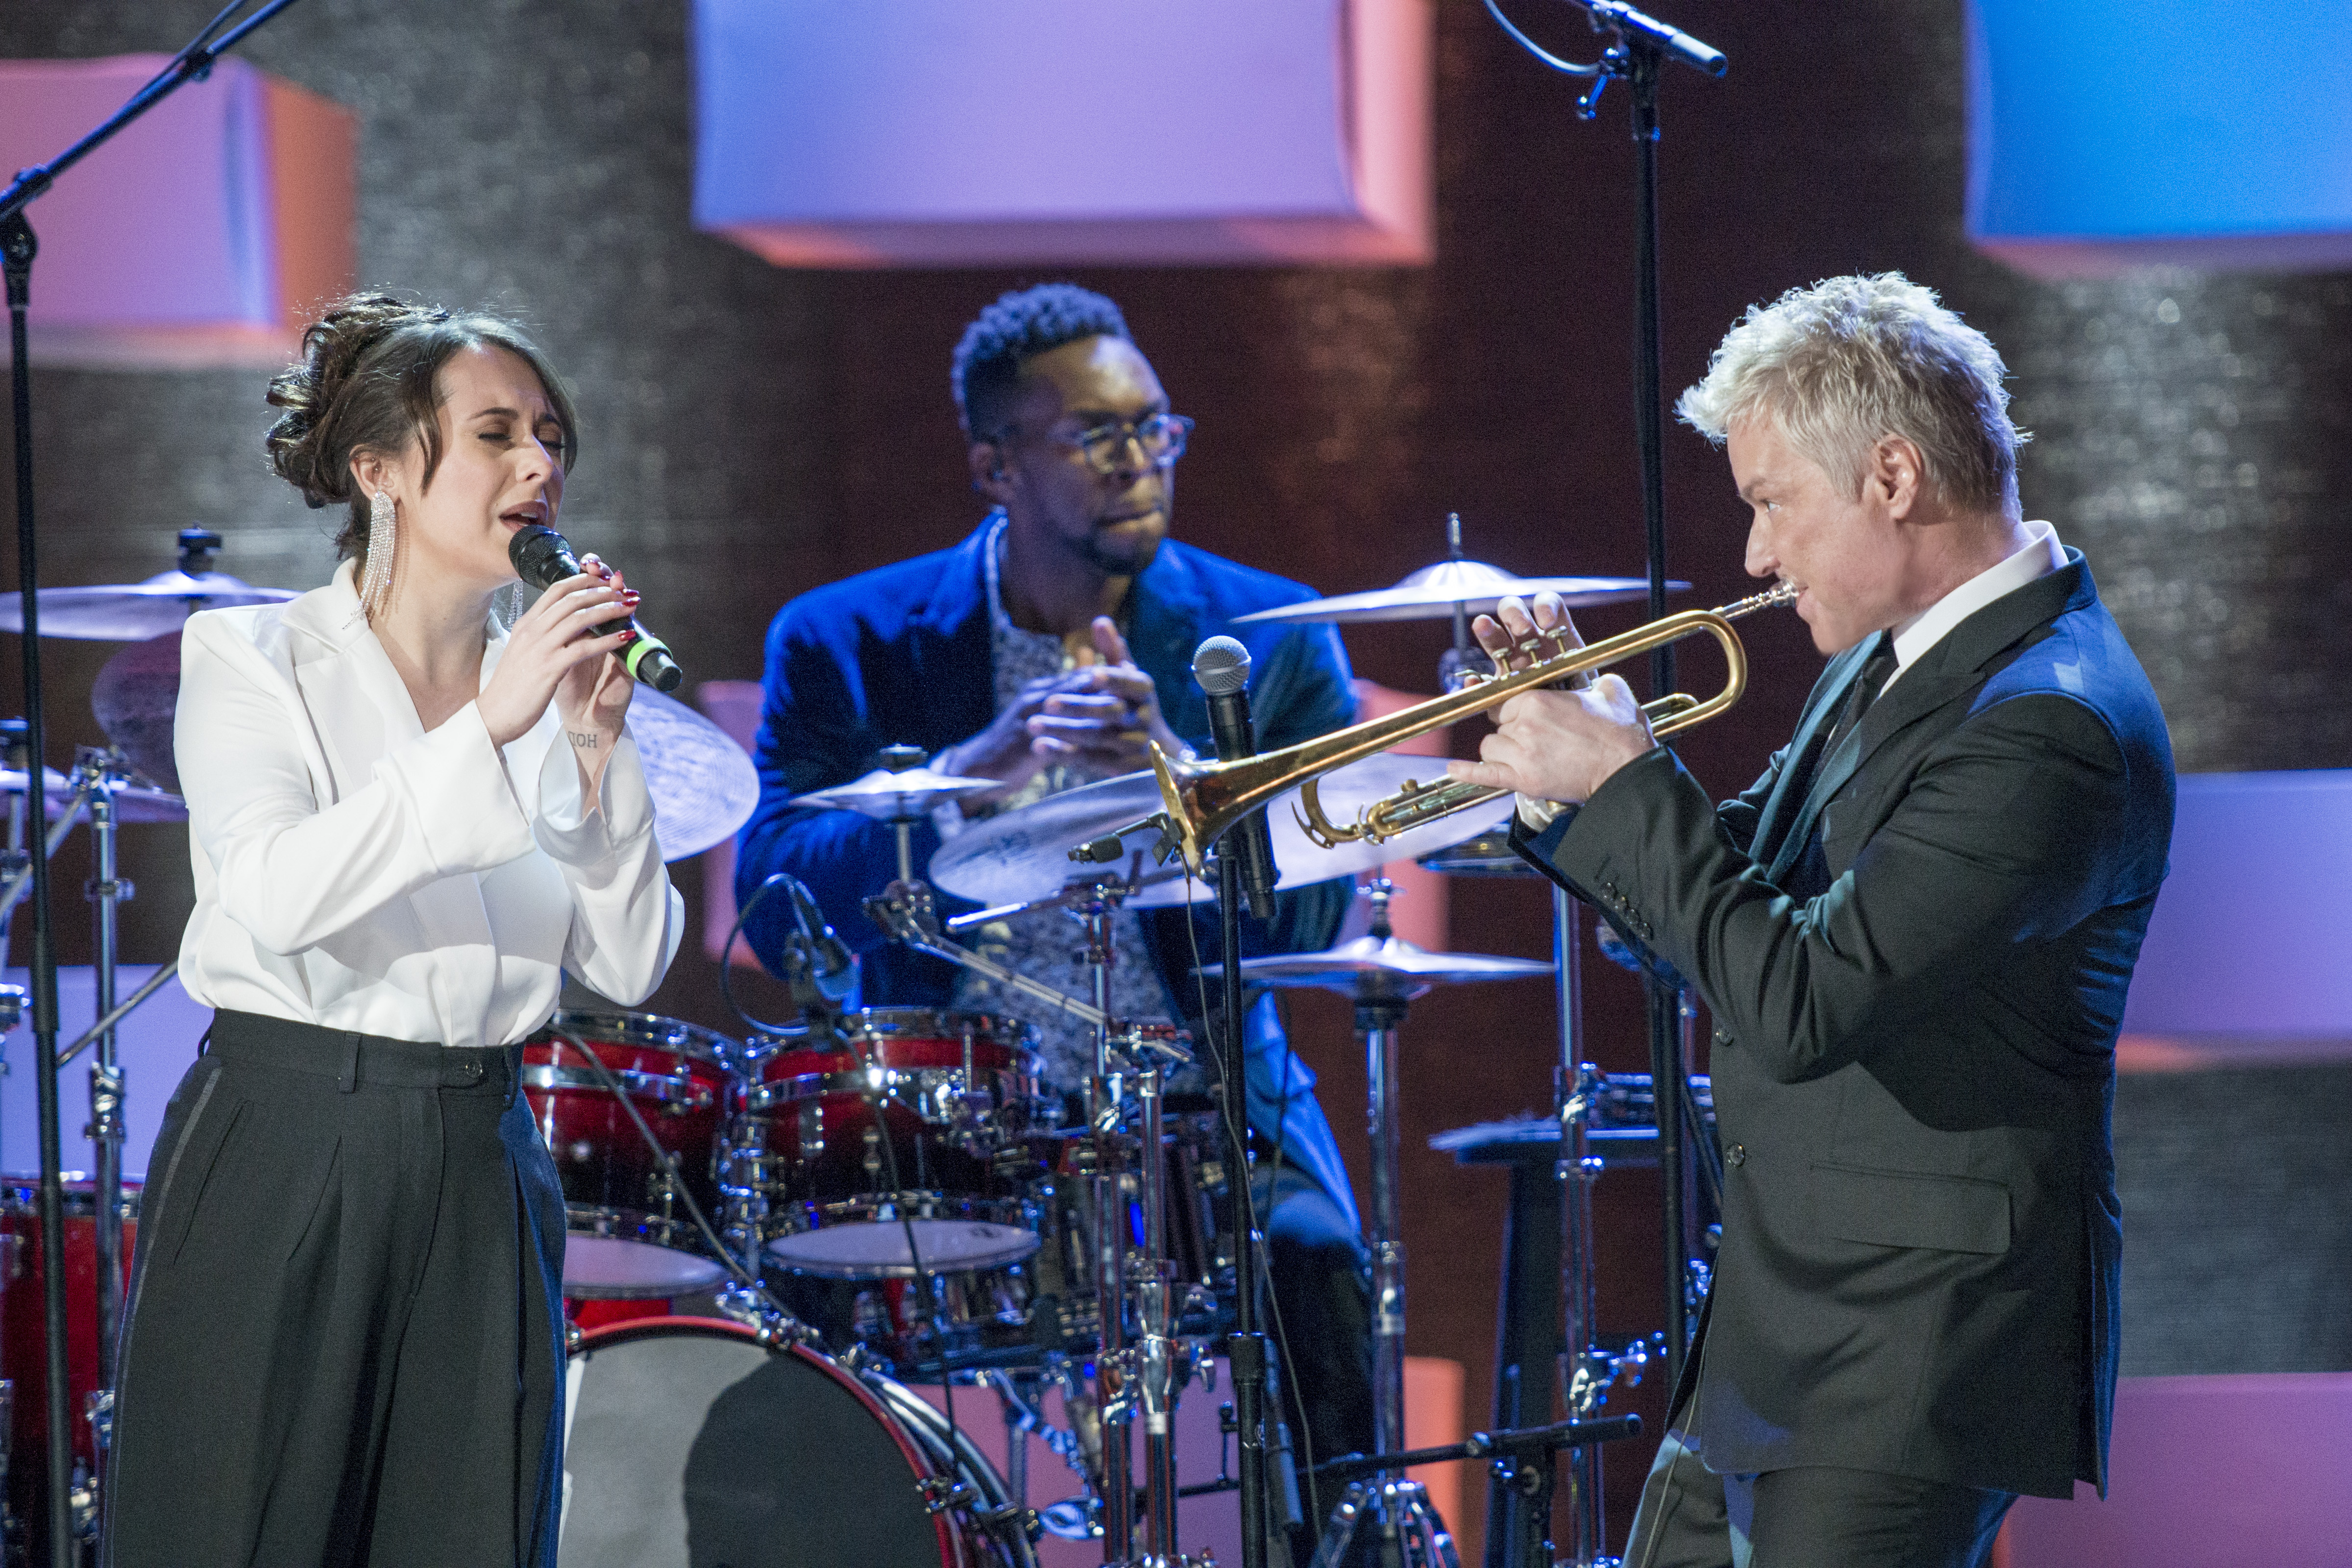 Great Performances: The Chris Botti Band in Concert | Press Release